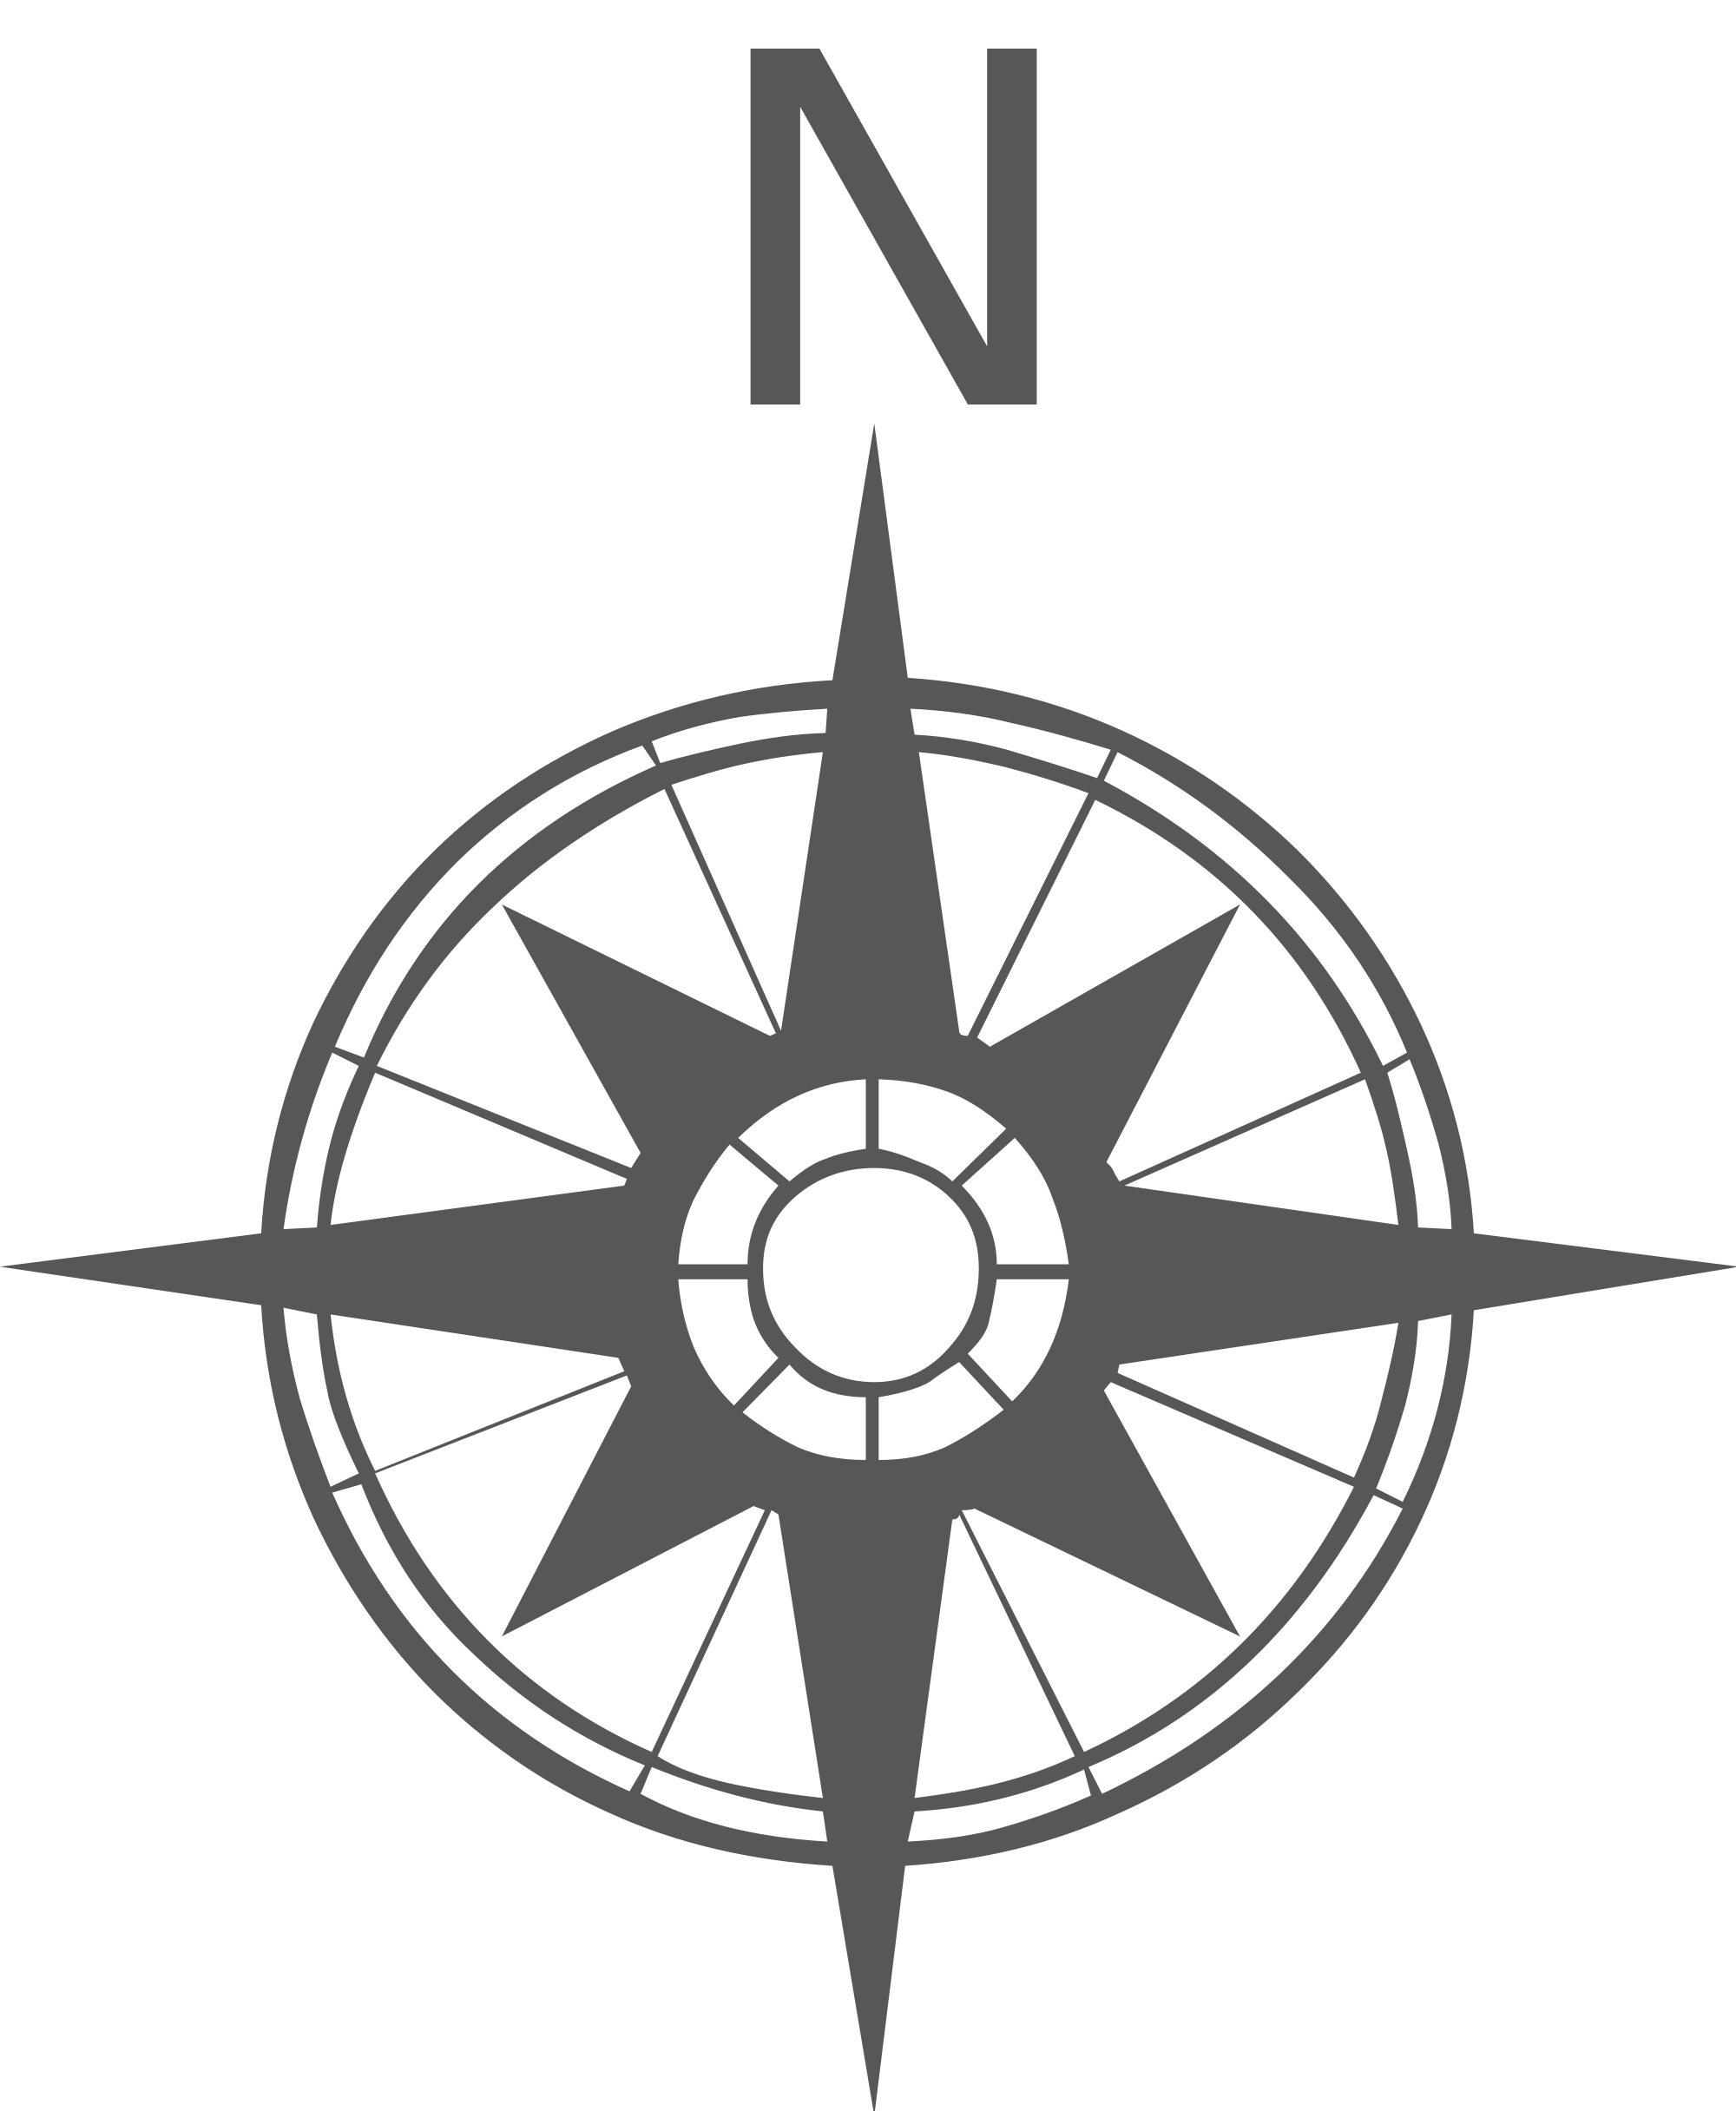 Open PlusPng.com  - Compass Rose PNG Black And White